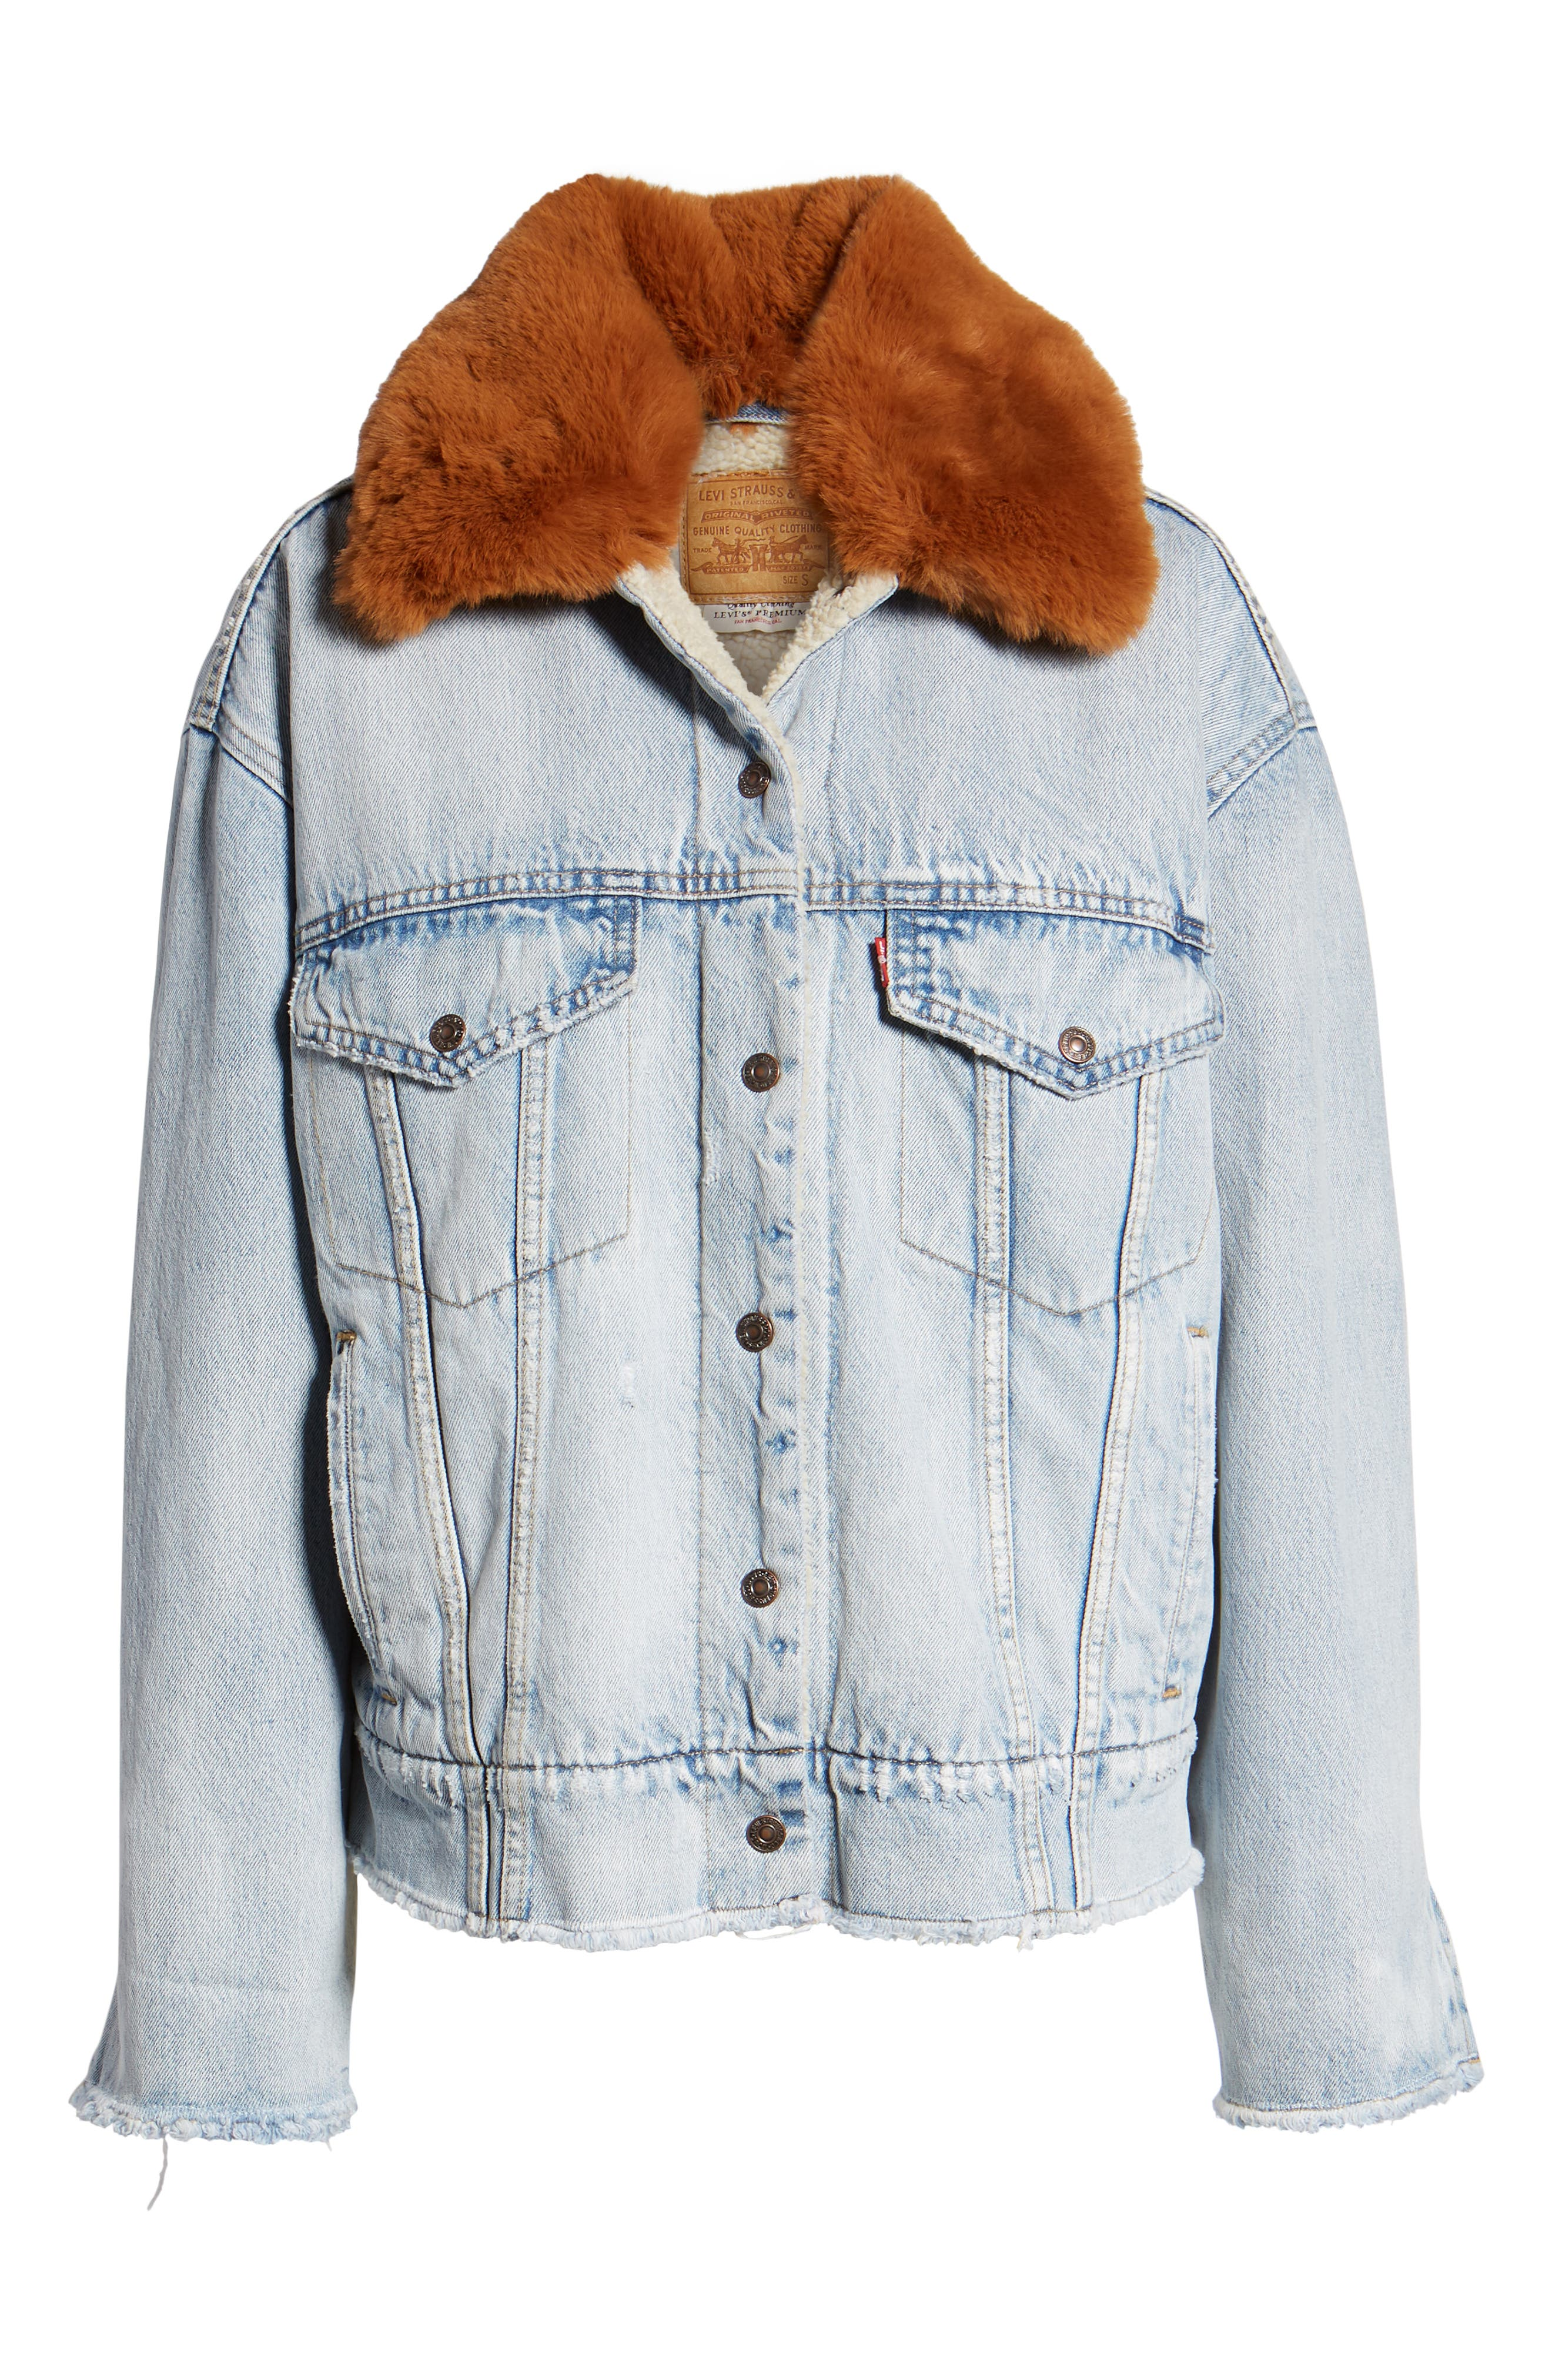 Oversize Faux Shearling Lined Denim Trucker Jacket with Removable Faux Fur Collar,                             Alternate thumbnail 6, color,                             401